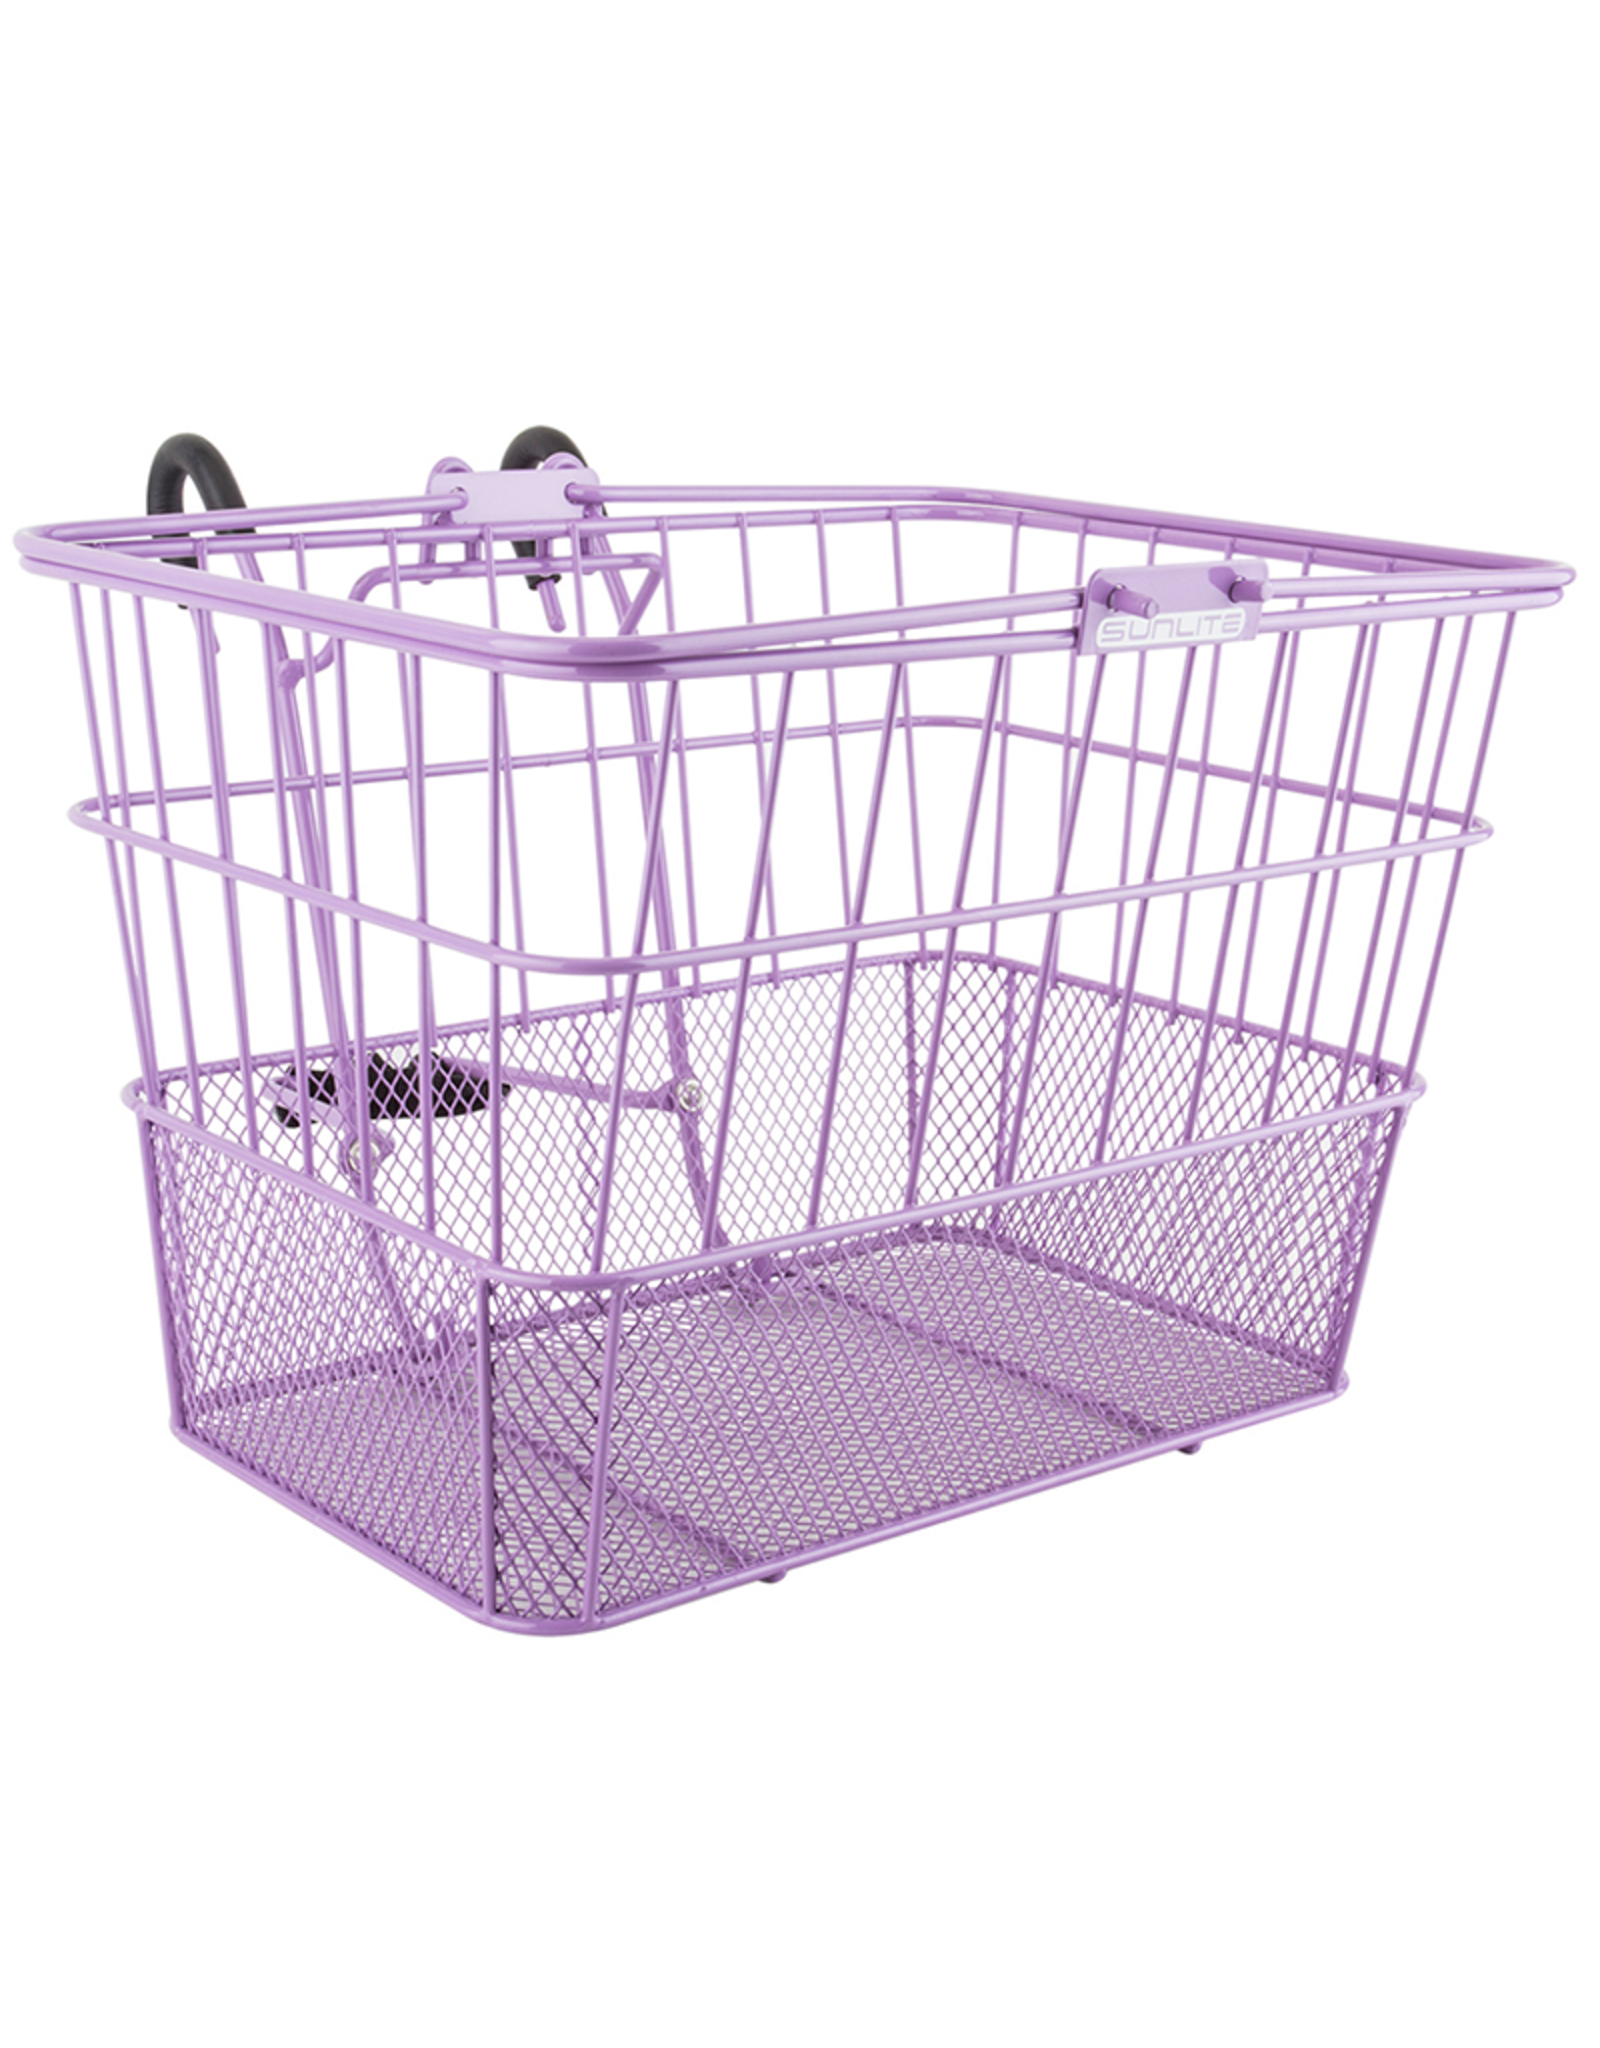 SUNLITE Front Basket: Wire Mesh Lift Off: Purple